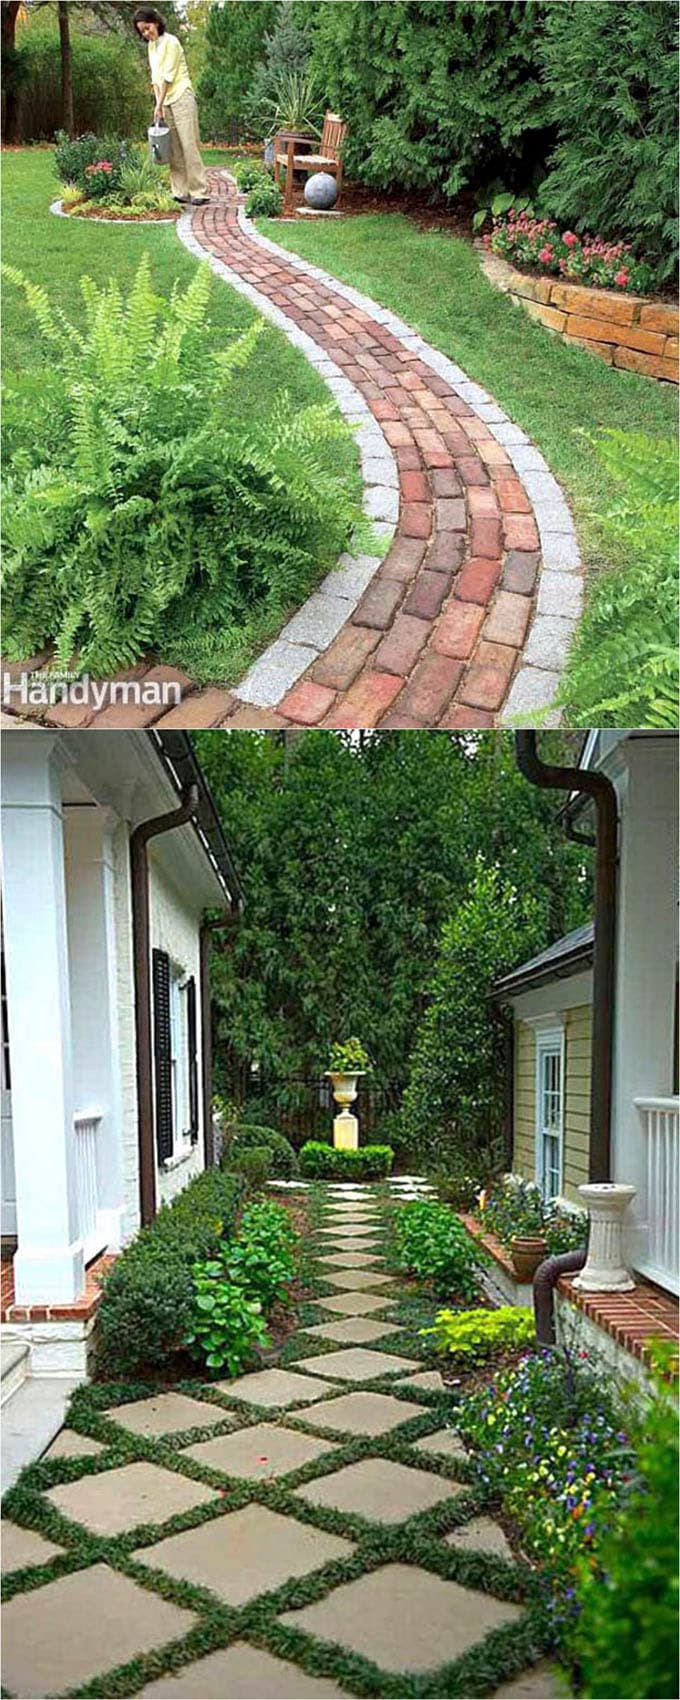 By Adding Attractive Pavers Such As Brick Slate Or Concrete Stepping Stones You Can Have Both Beauty And Functionality